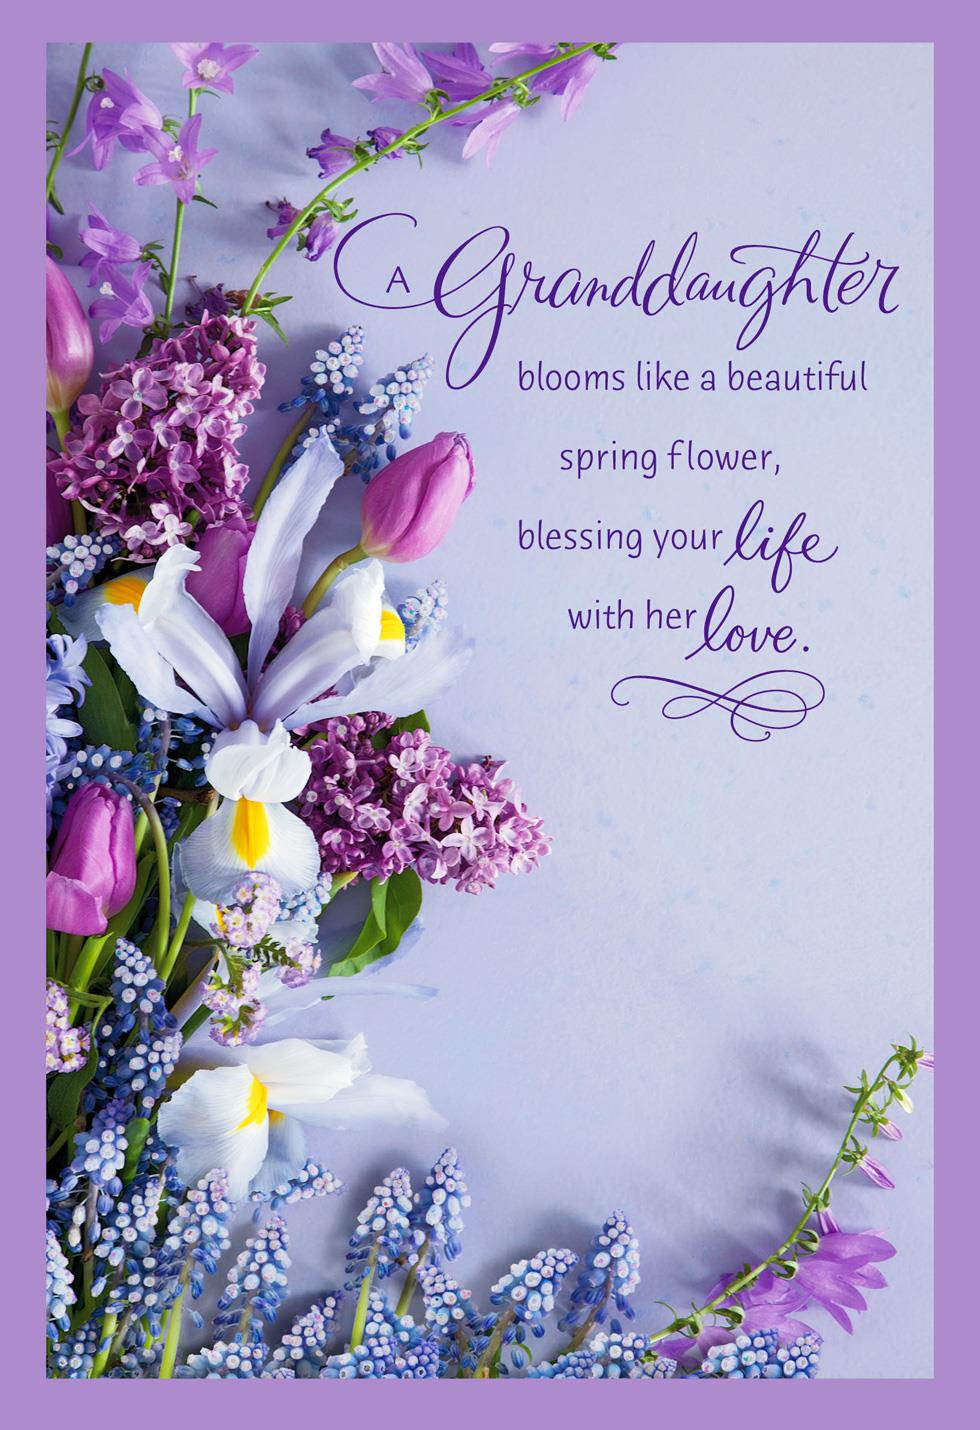 Beautiful Spring Flower Bouquet Easter Card For